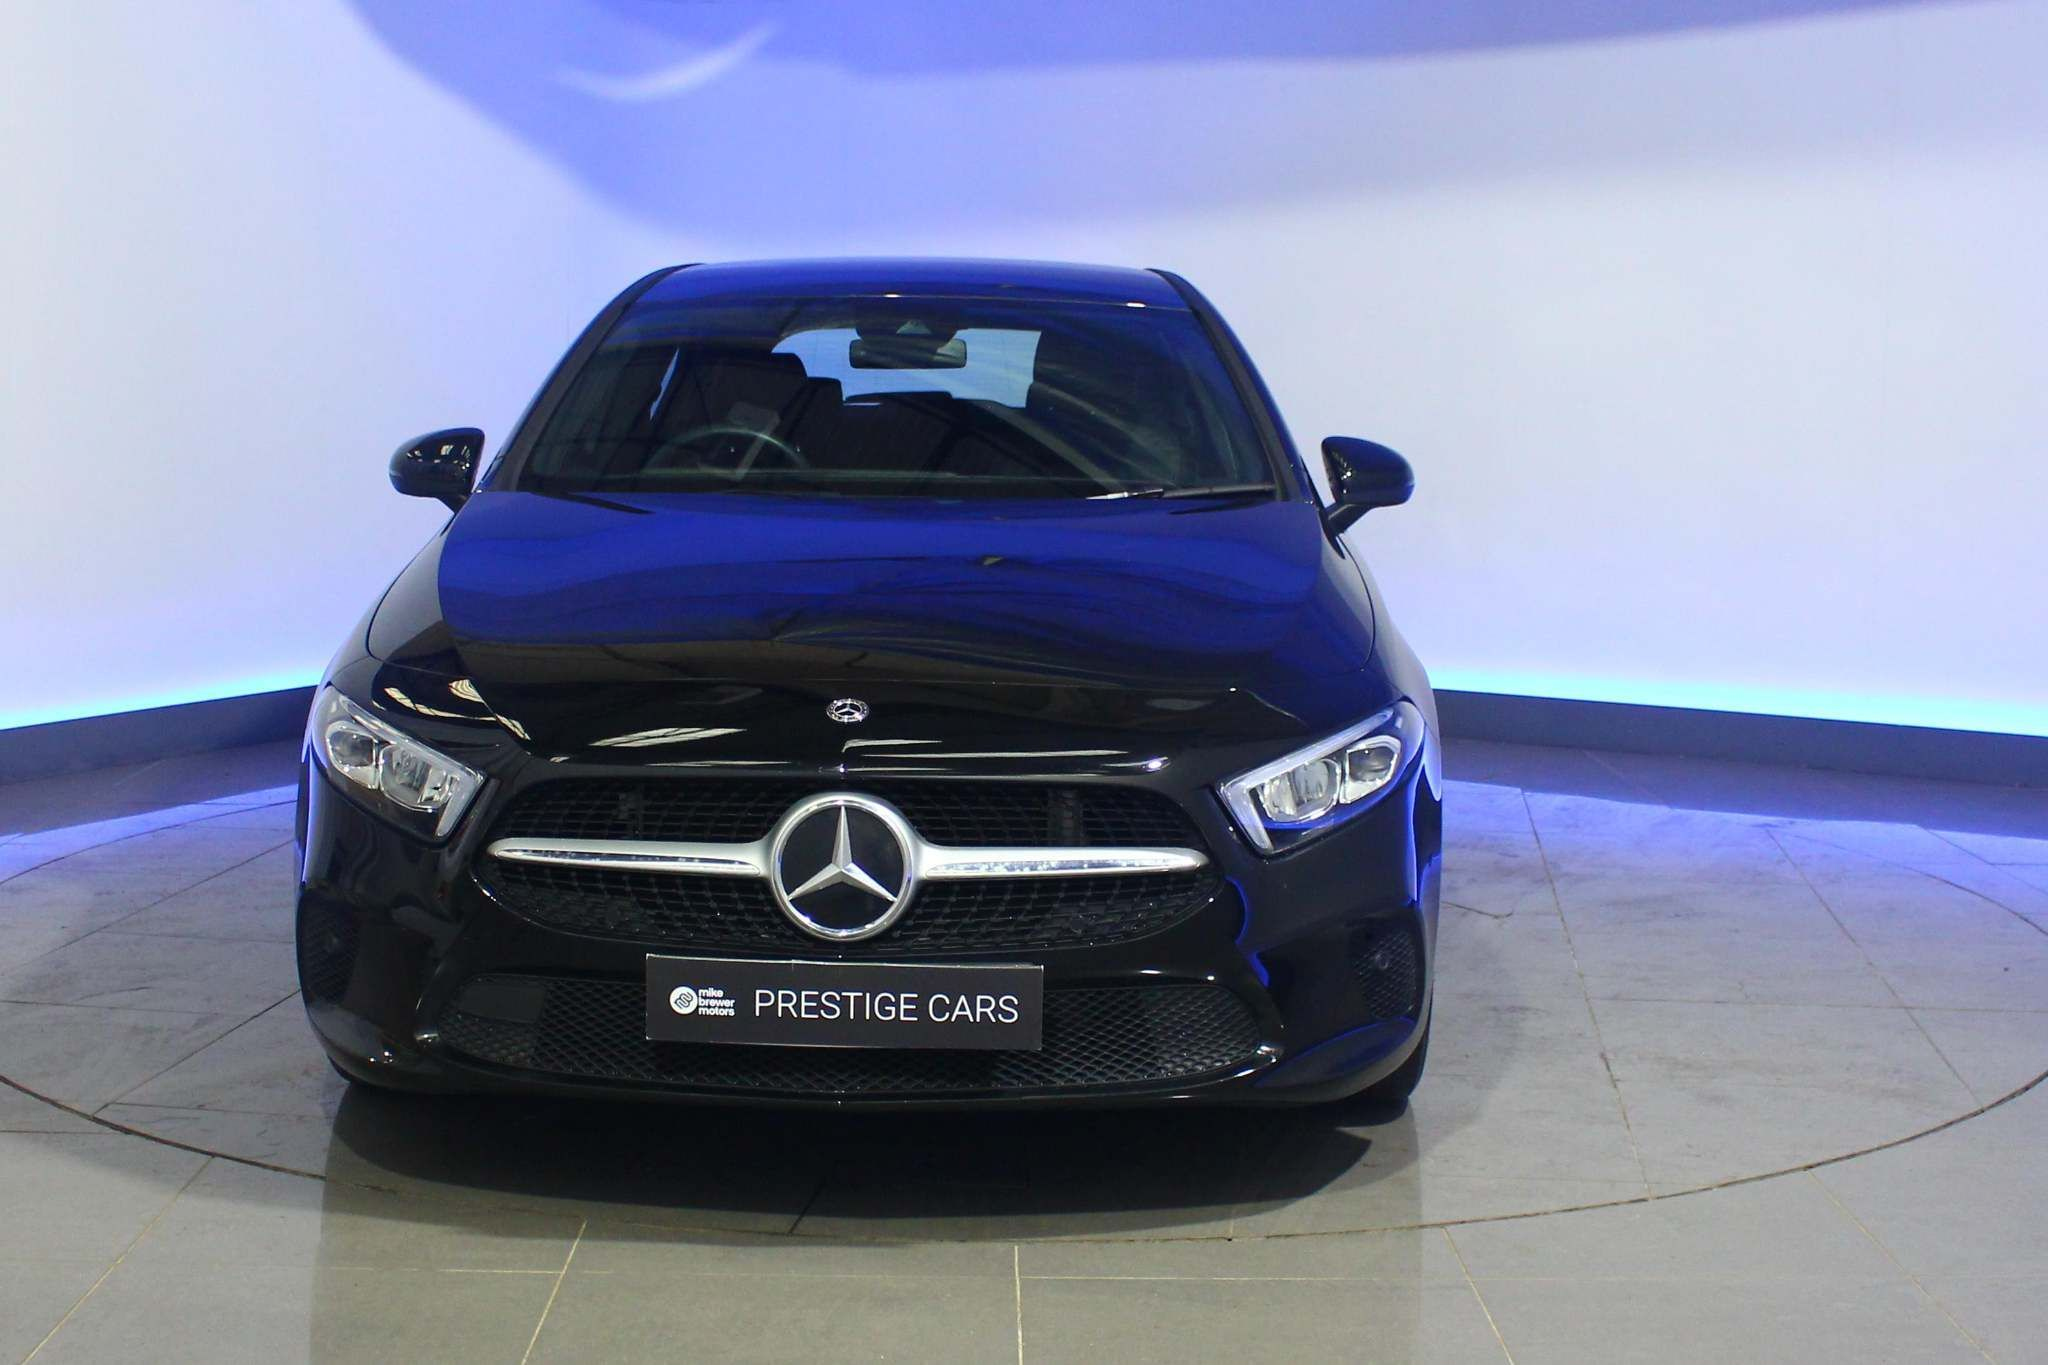 Used Mercedes-Benz A Class 1.5 A180d Sport (executive) 7g-Dct (s/s) 5dr